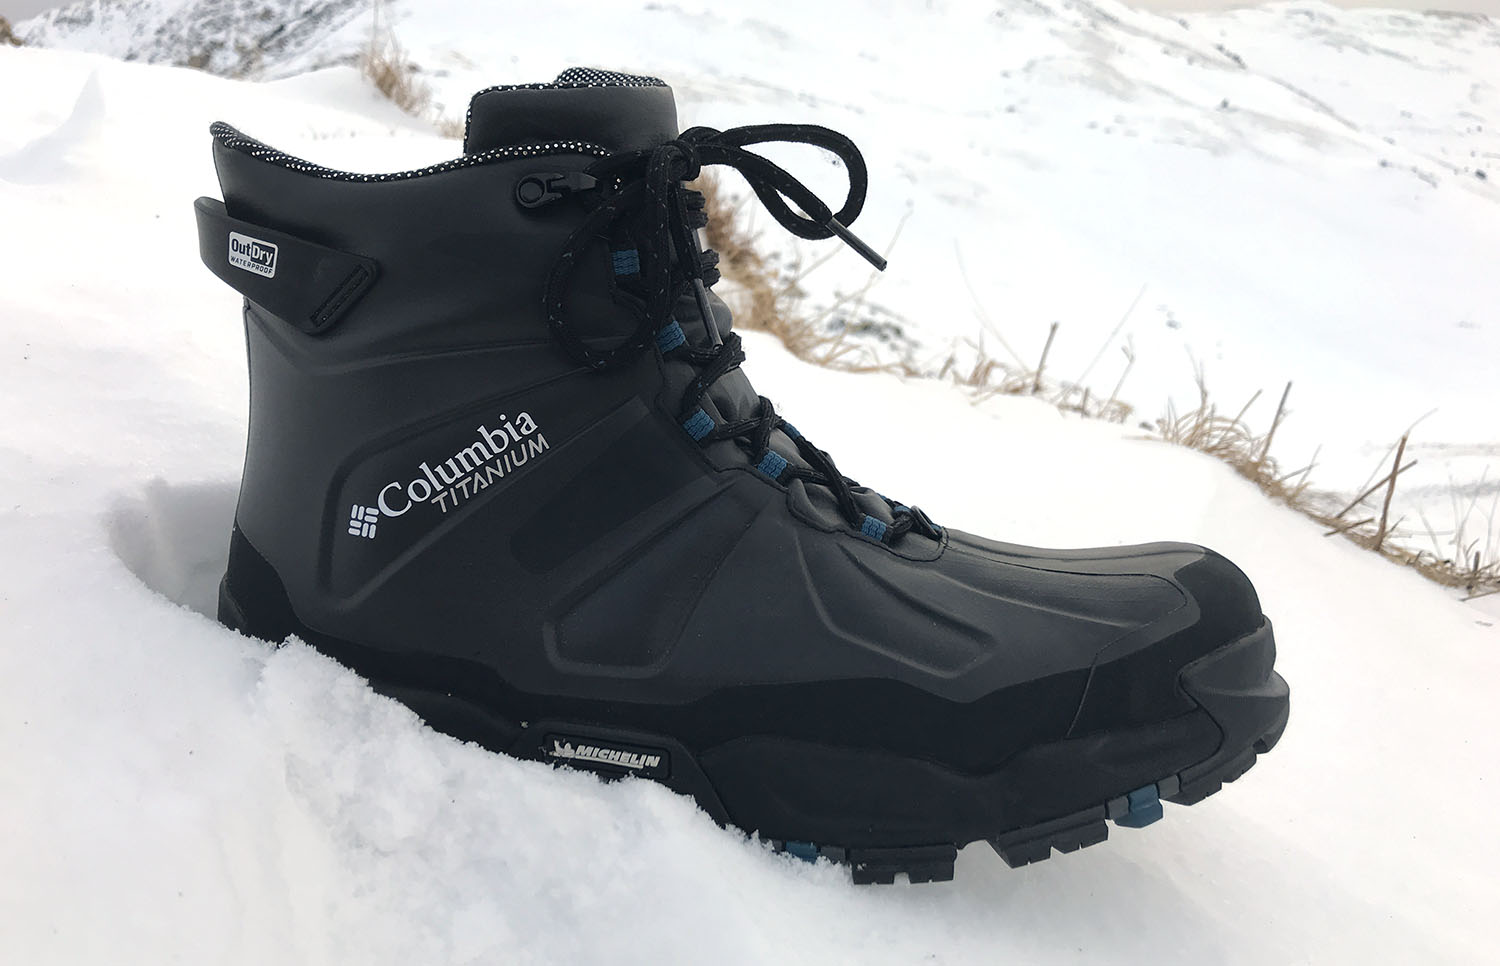 acab70bcf2c Best Winter Boots for Men | GearJunkie